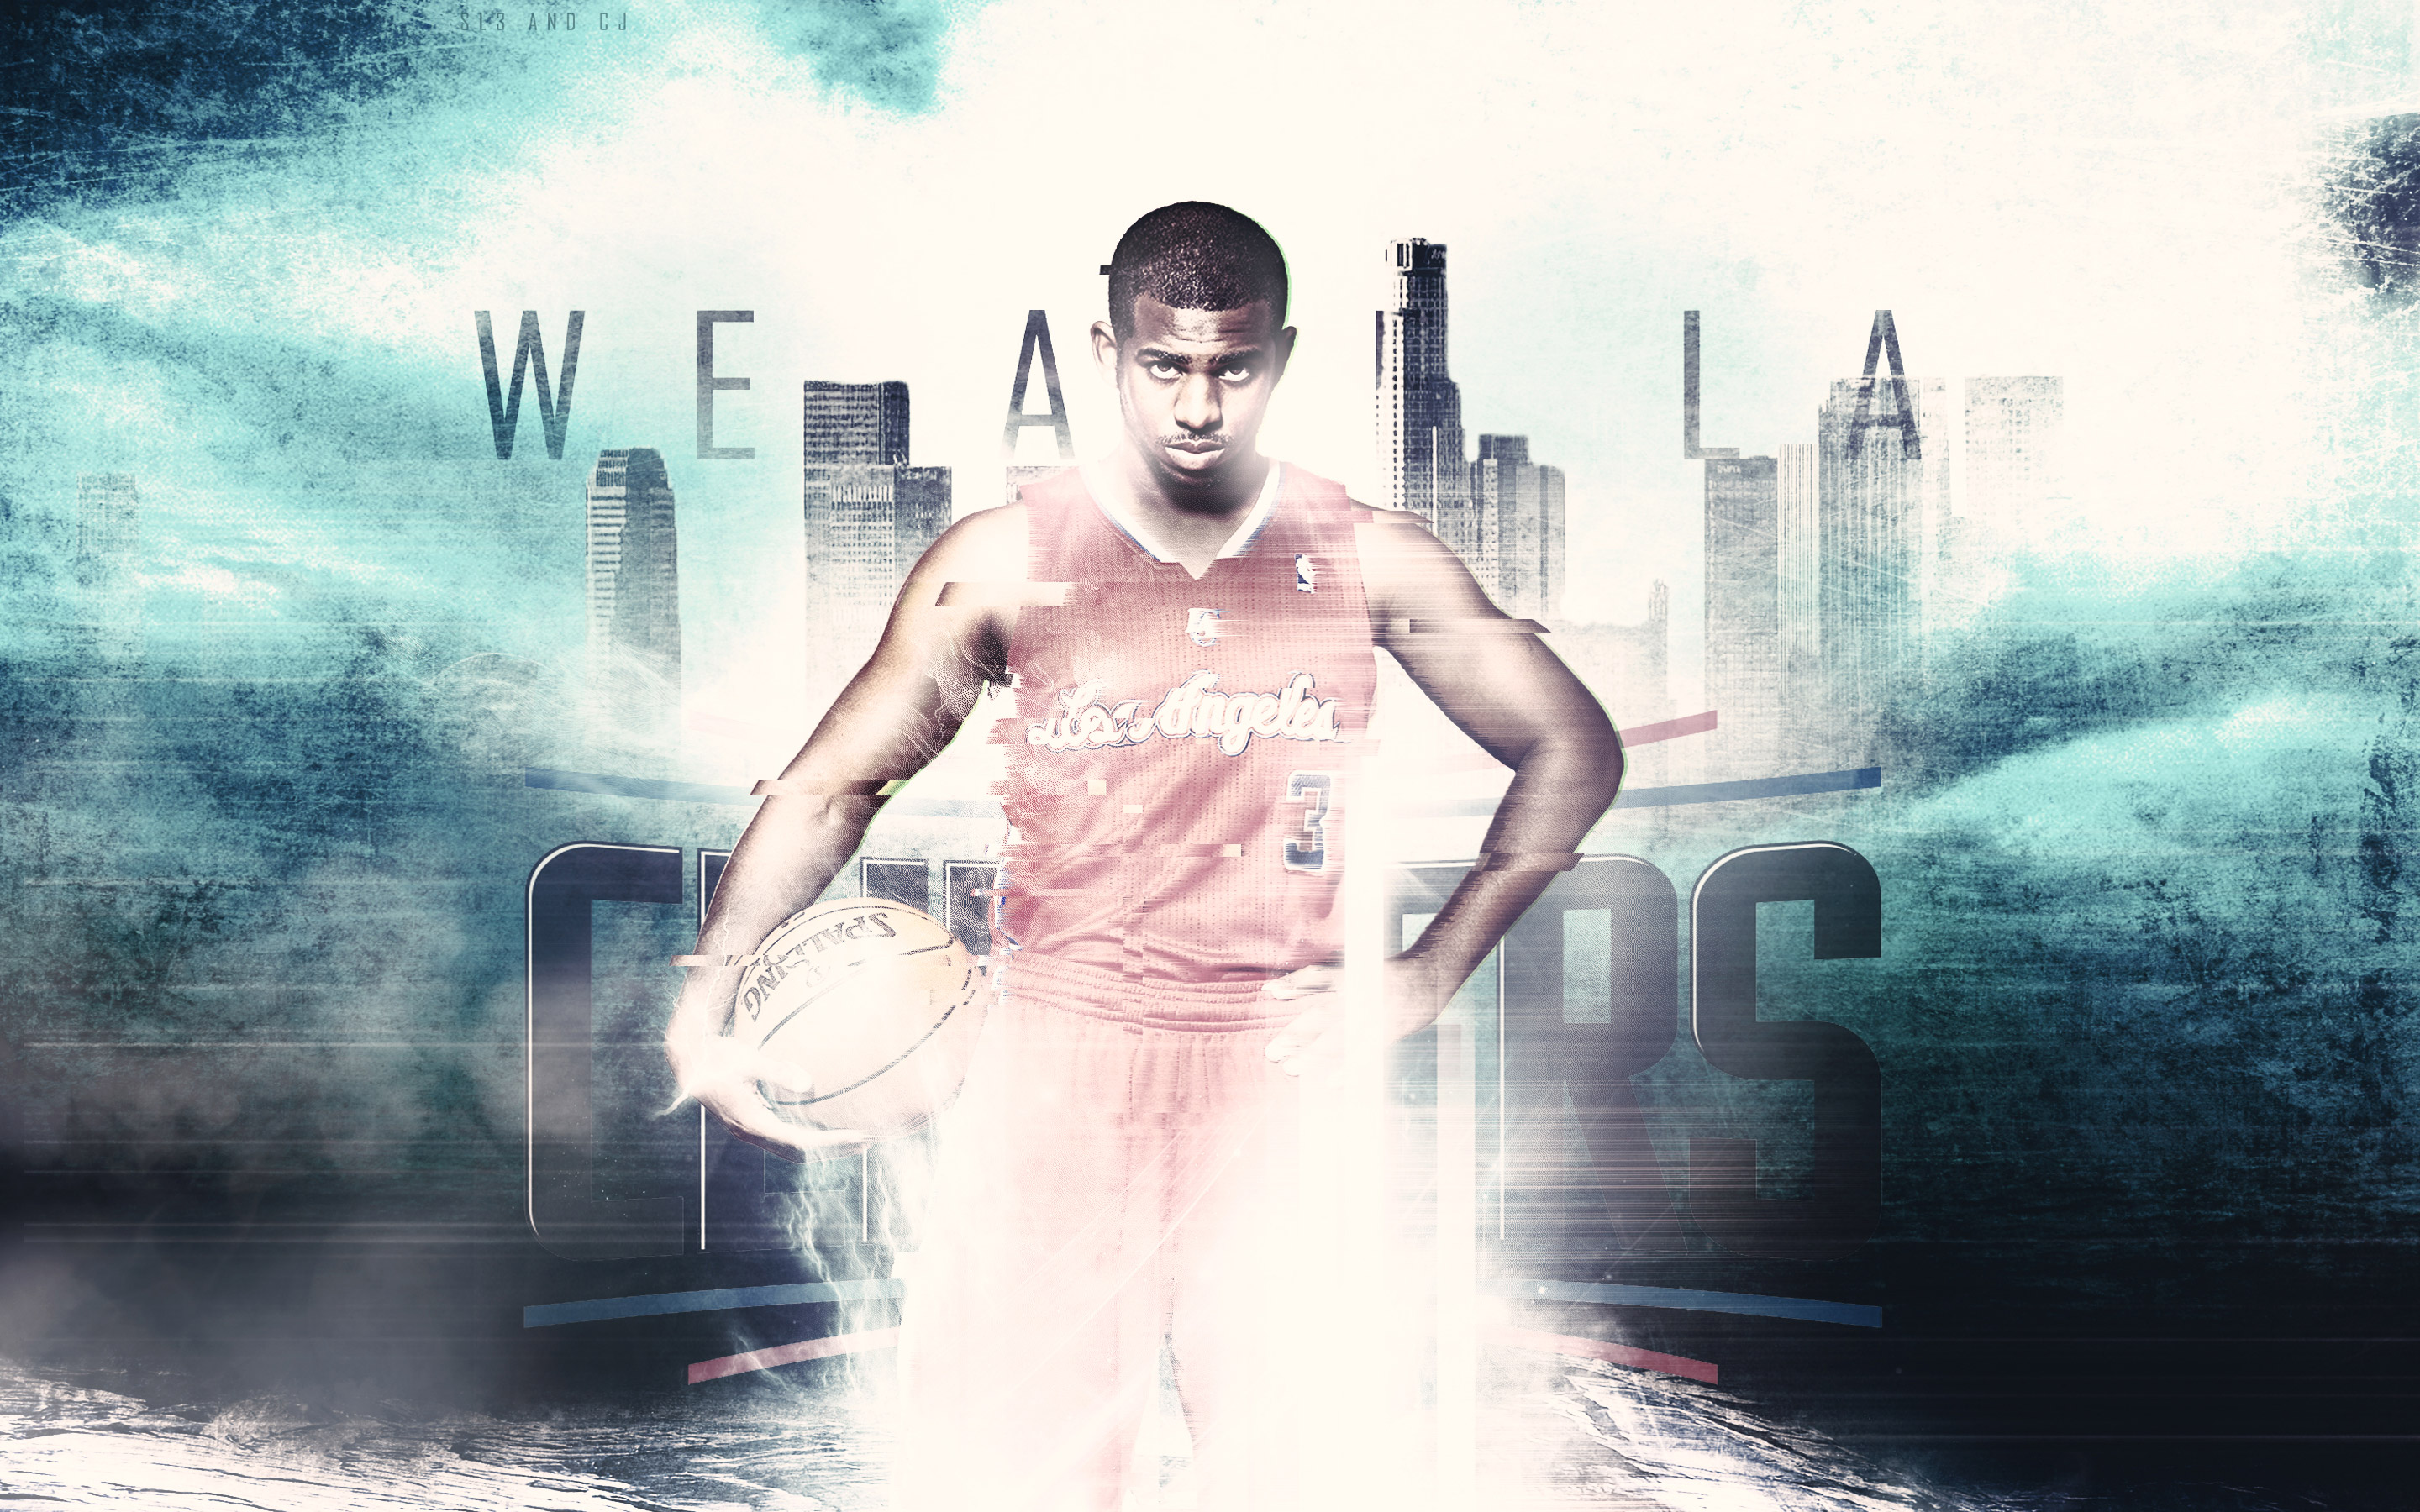 chris paul we are la clippers wallpaper basketball